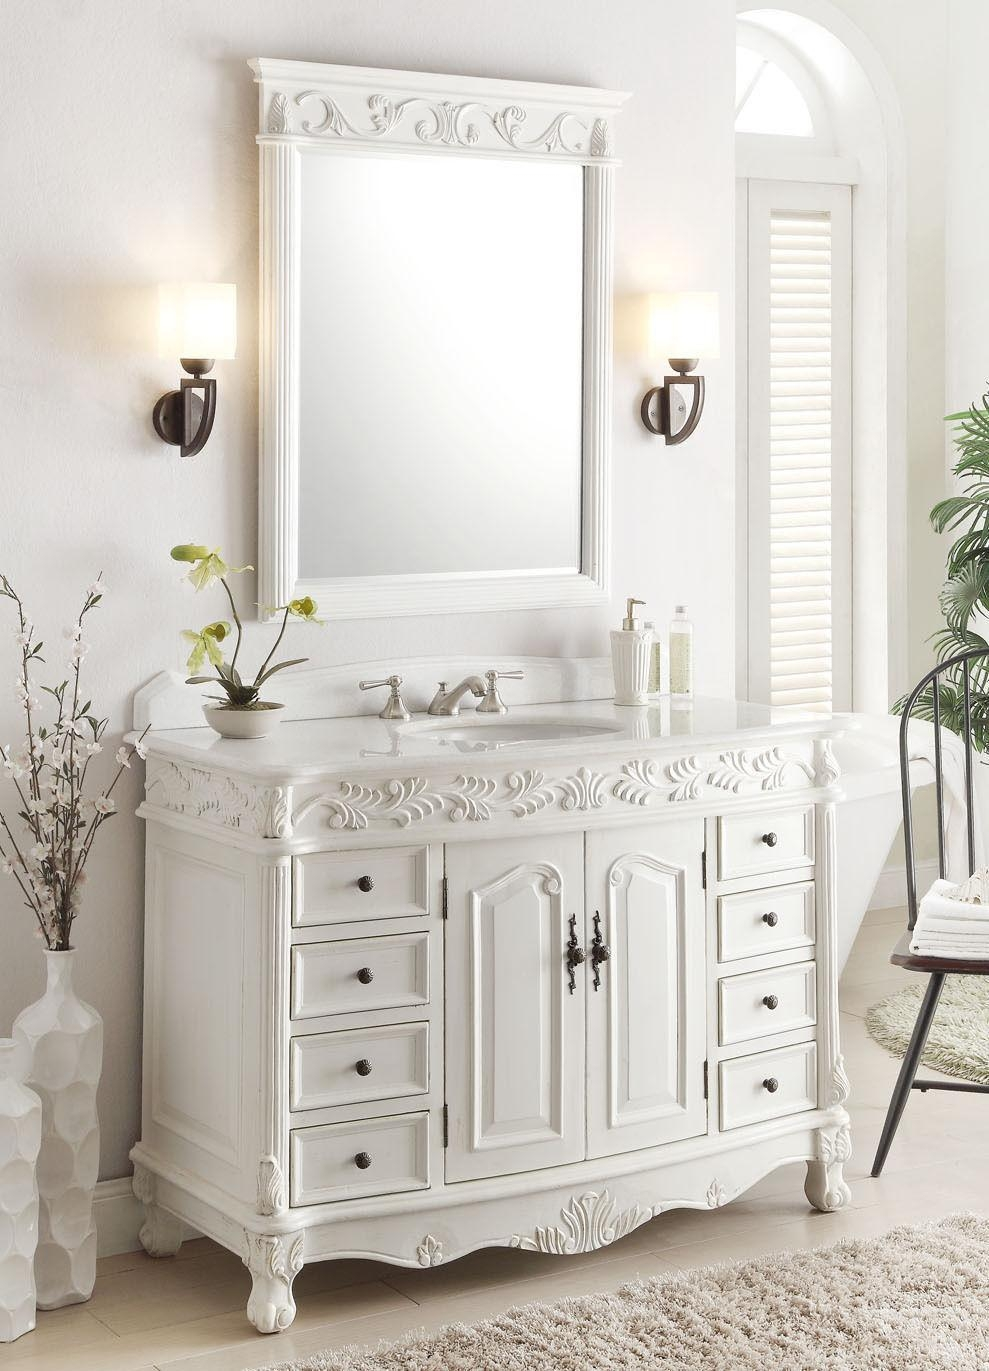 Elegant Antique White Bathroom Vanity Mirrors 82 For Your With In White Antique Mirrors (Image 14 of 20)